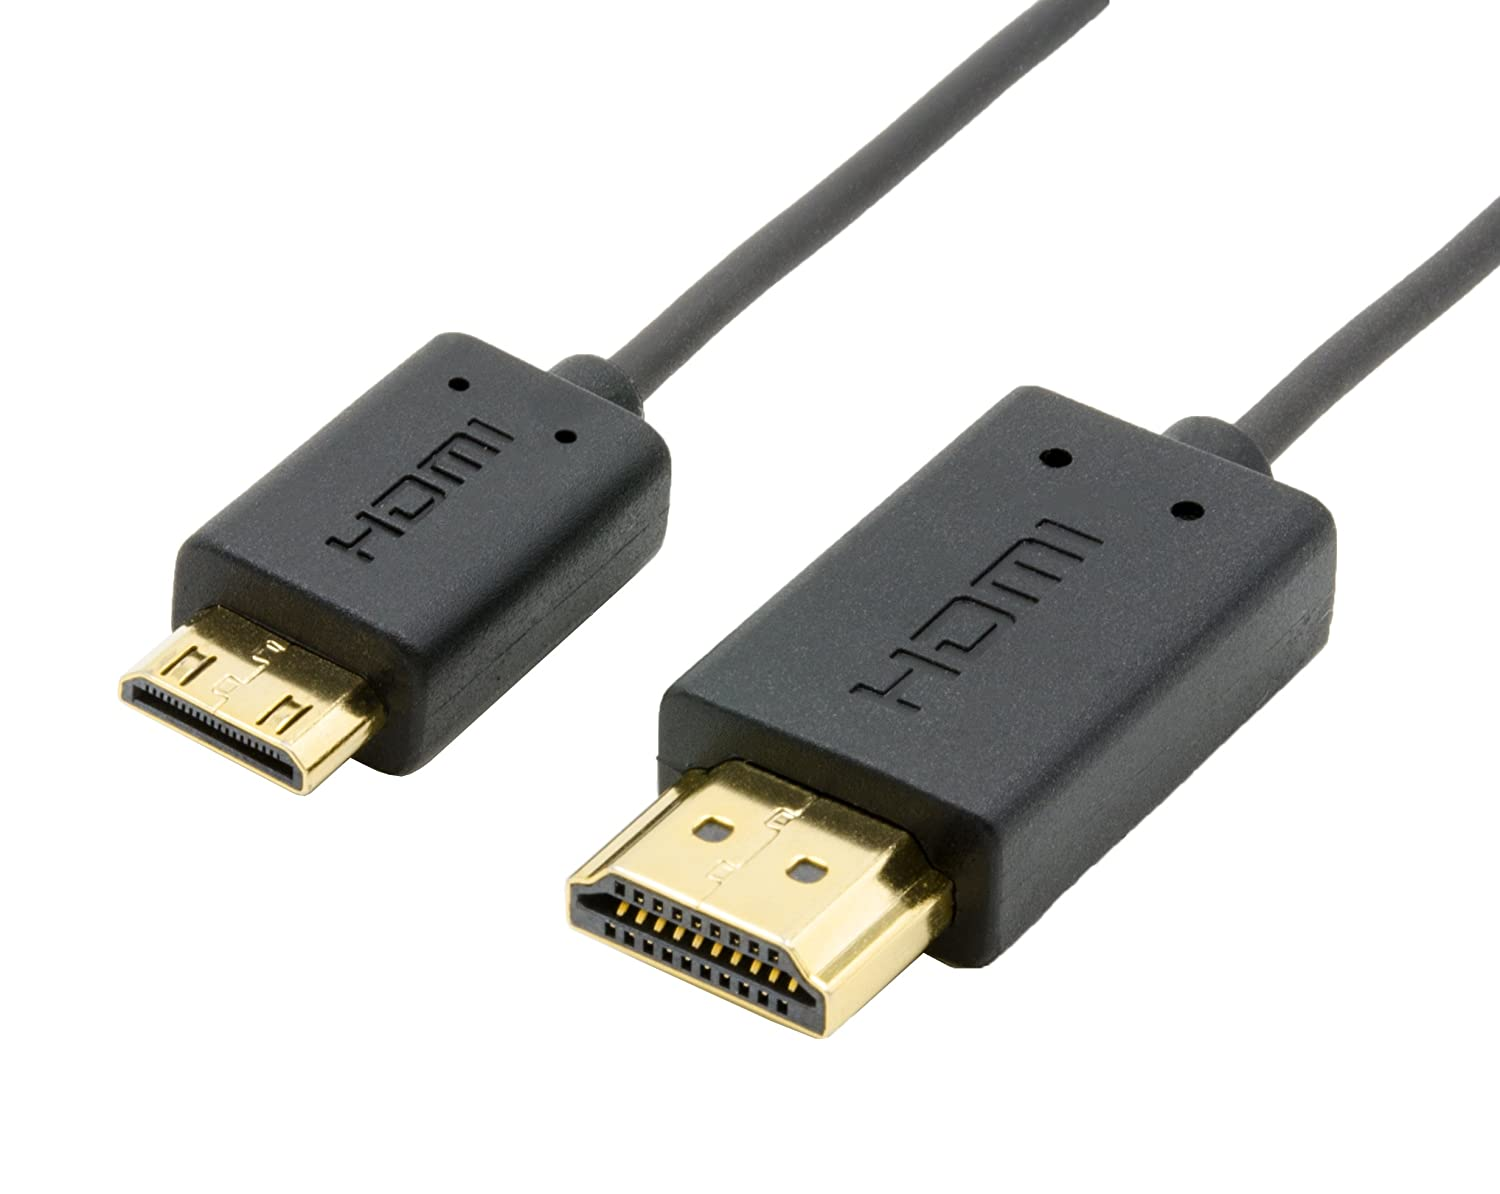 Cable Hdmi A Mini Hdmi 0.8m Ultra Fino 4k 1080p Nanosecond